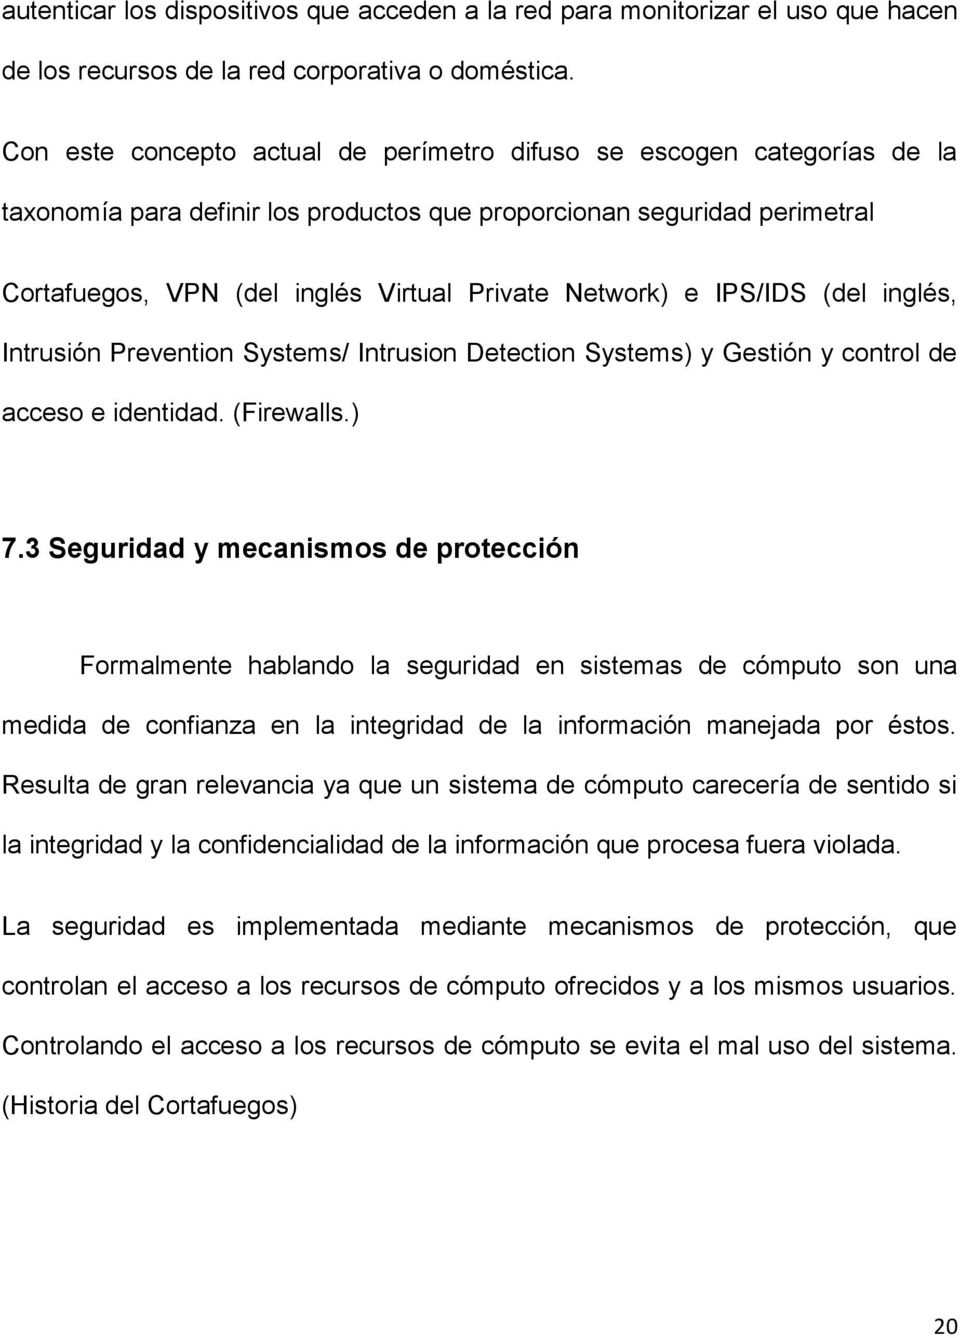 Network) e IPS/IDS (del inglés, Intrusión Prevention Systems/ Intrusion Detection Systems) y Gestión y control de acceso e identidad. (Firewalls.) 7.